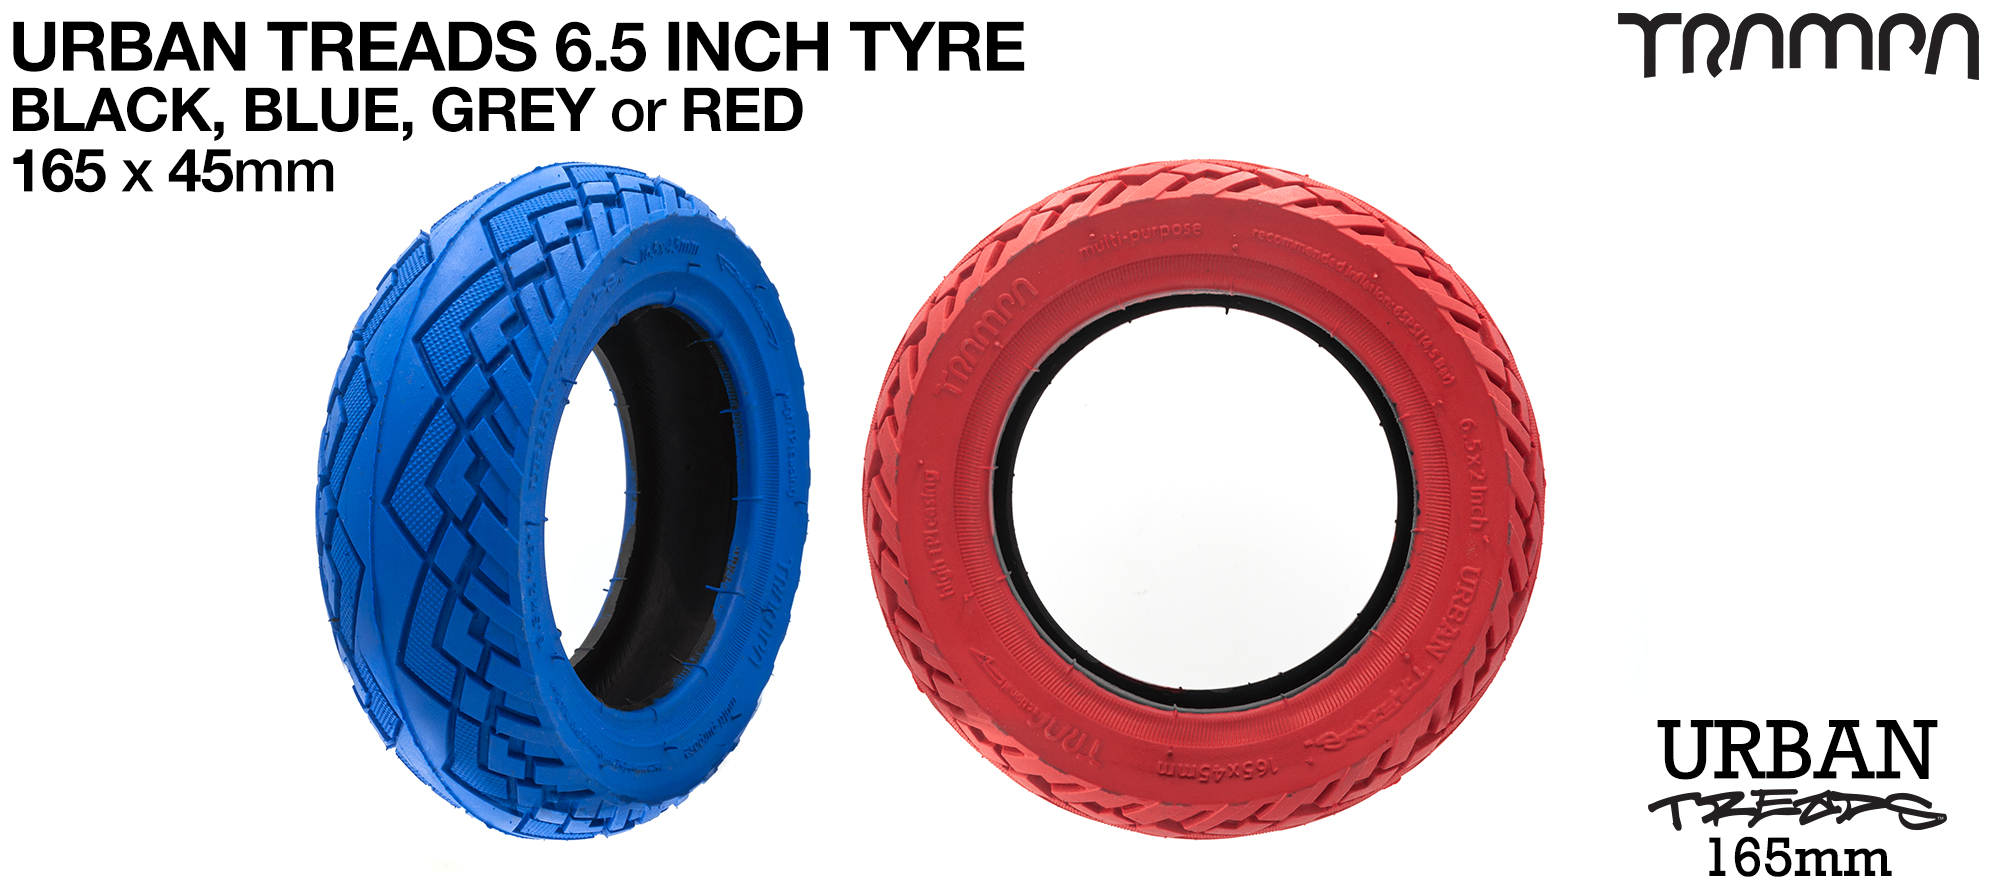 6.5Inch TRAMPA Urban Treads Ultimate Tyre & Tube